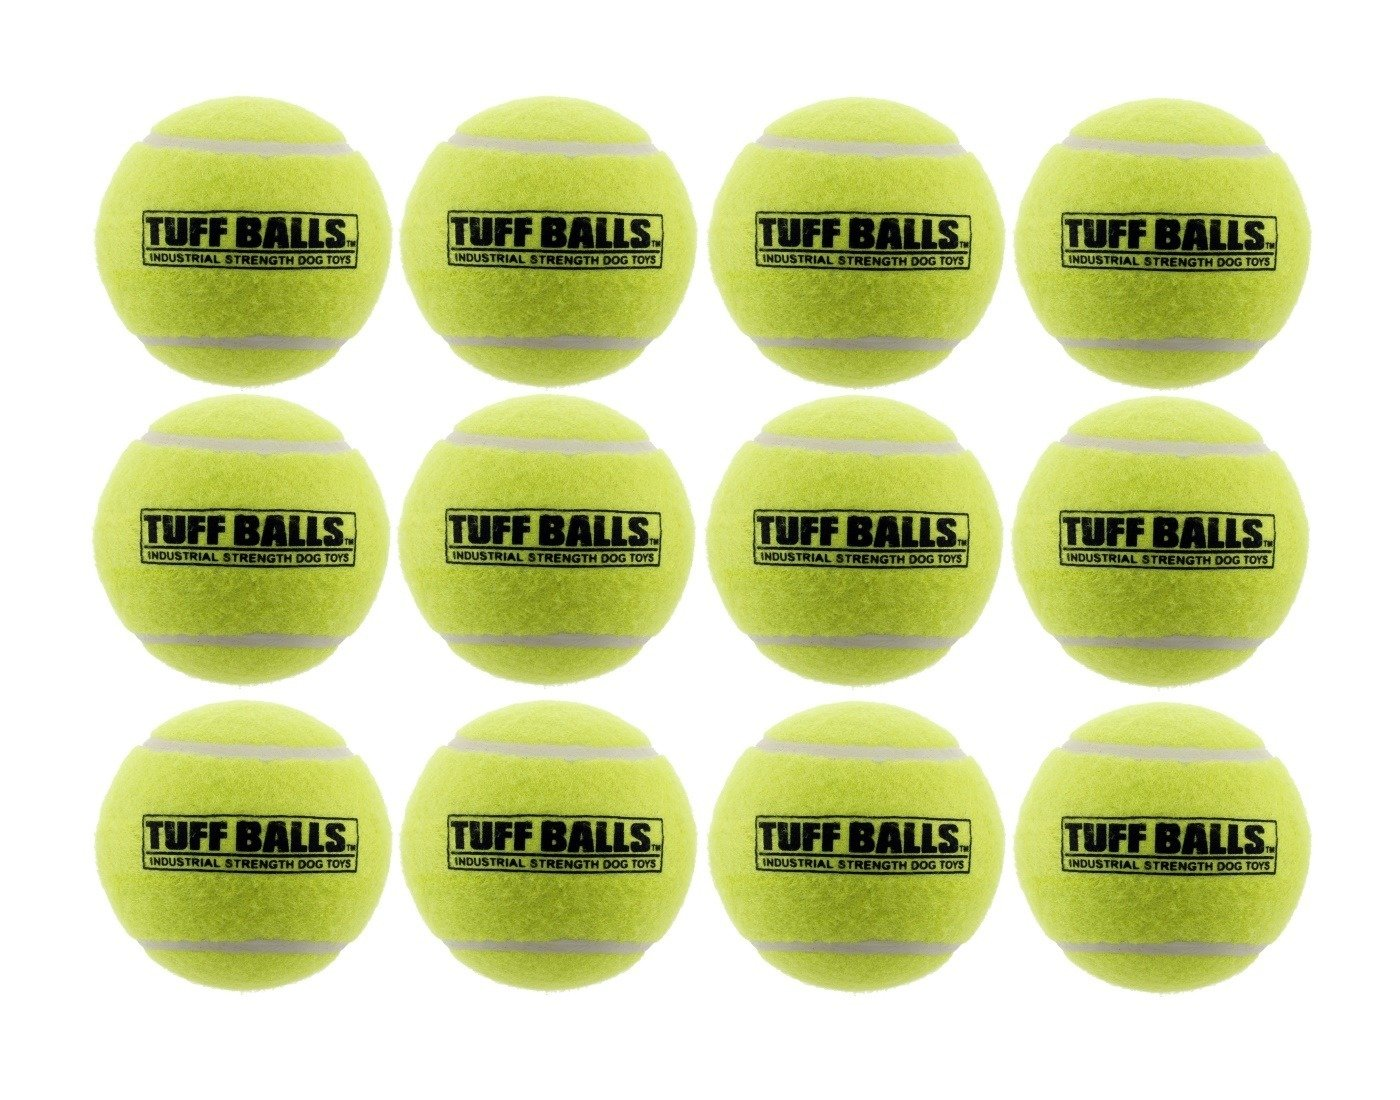 12 Tuff Balls - Industrial Strength Dog Toys, Standard Size 2.5''